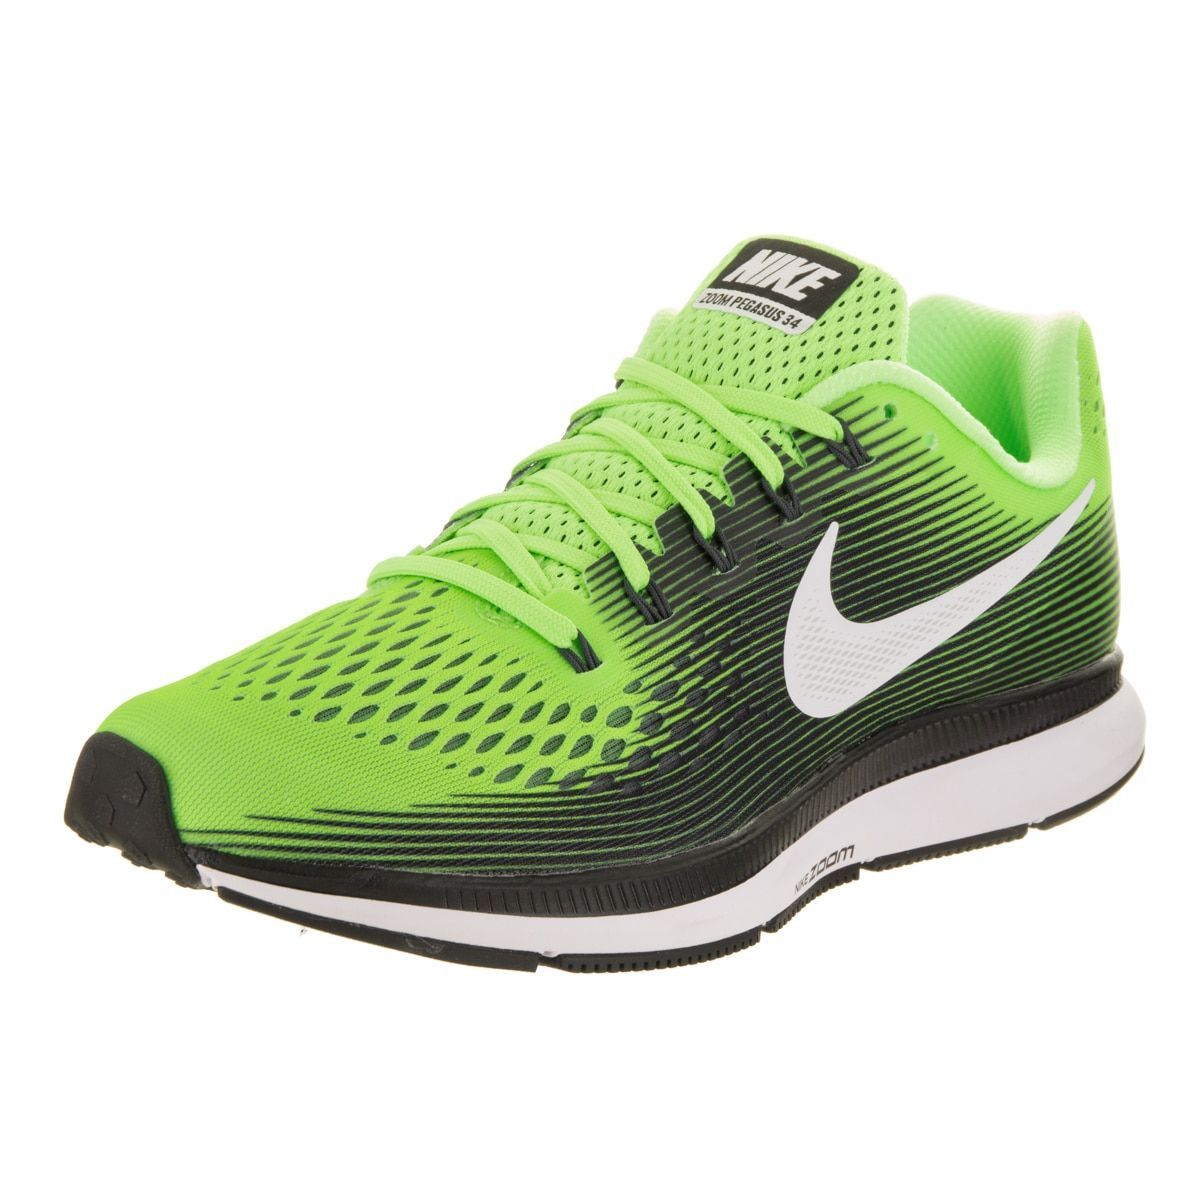 Rise above any ordinary run in the updated Nike Air Zoom Pegasus 34 running  shoe.